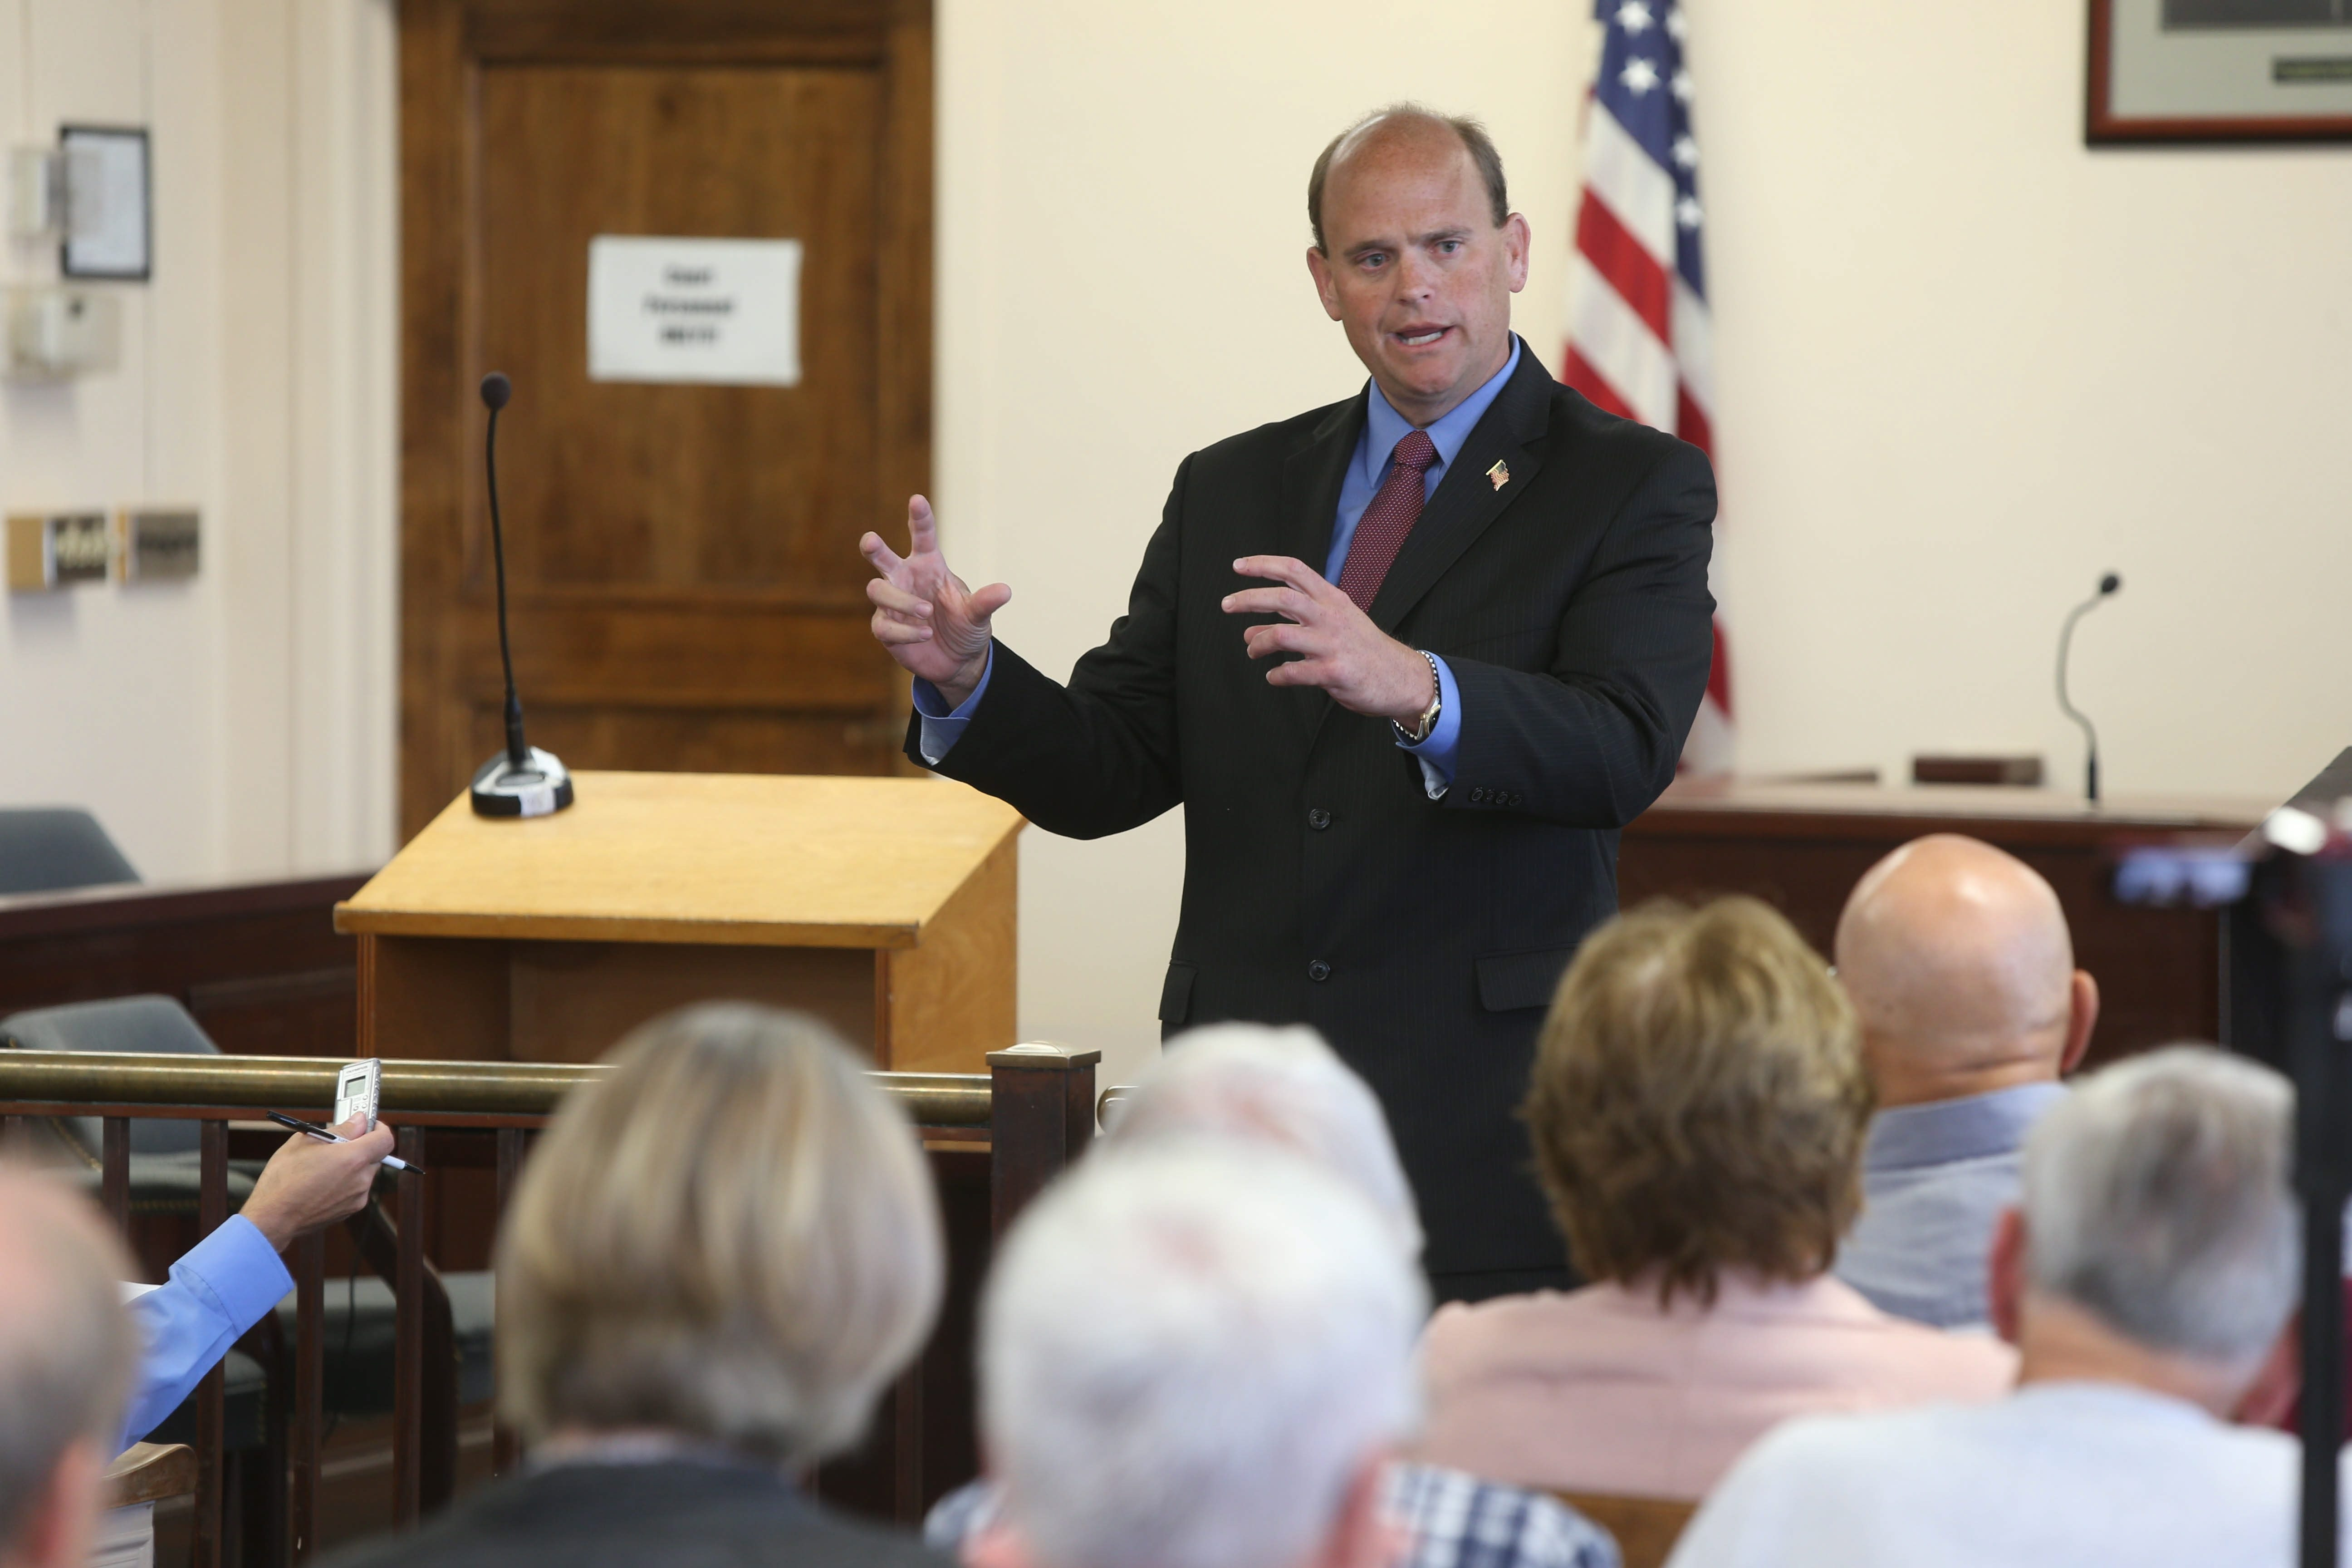 Rep. Tom Reed paid property tax of $4,247 from account for campaign.